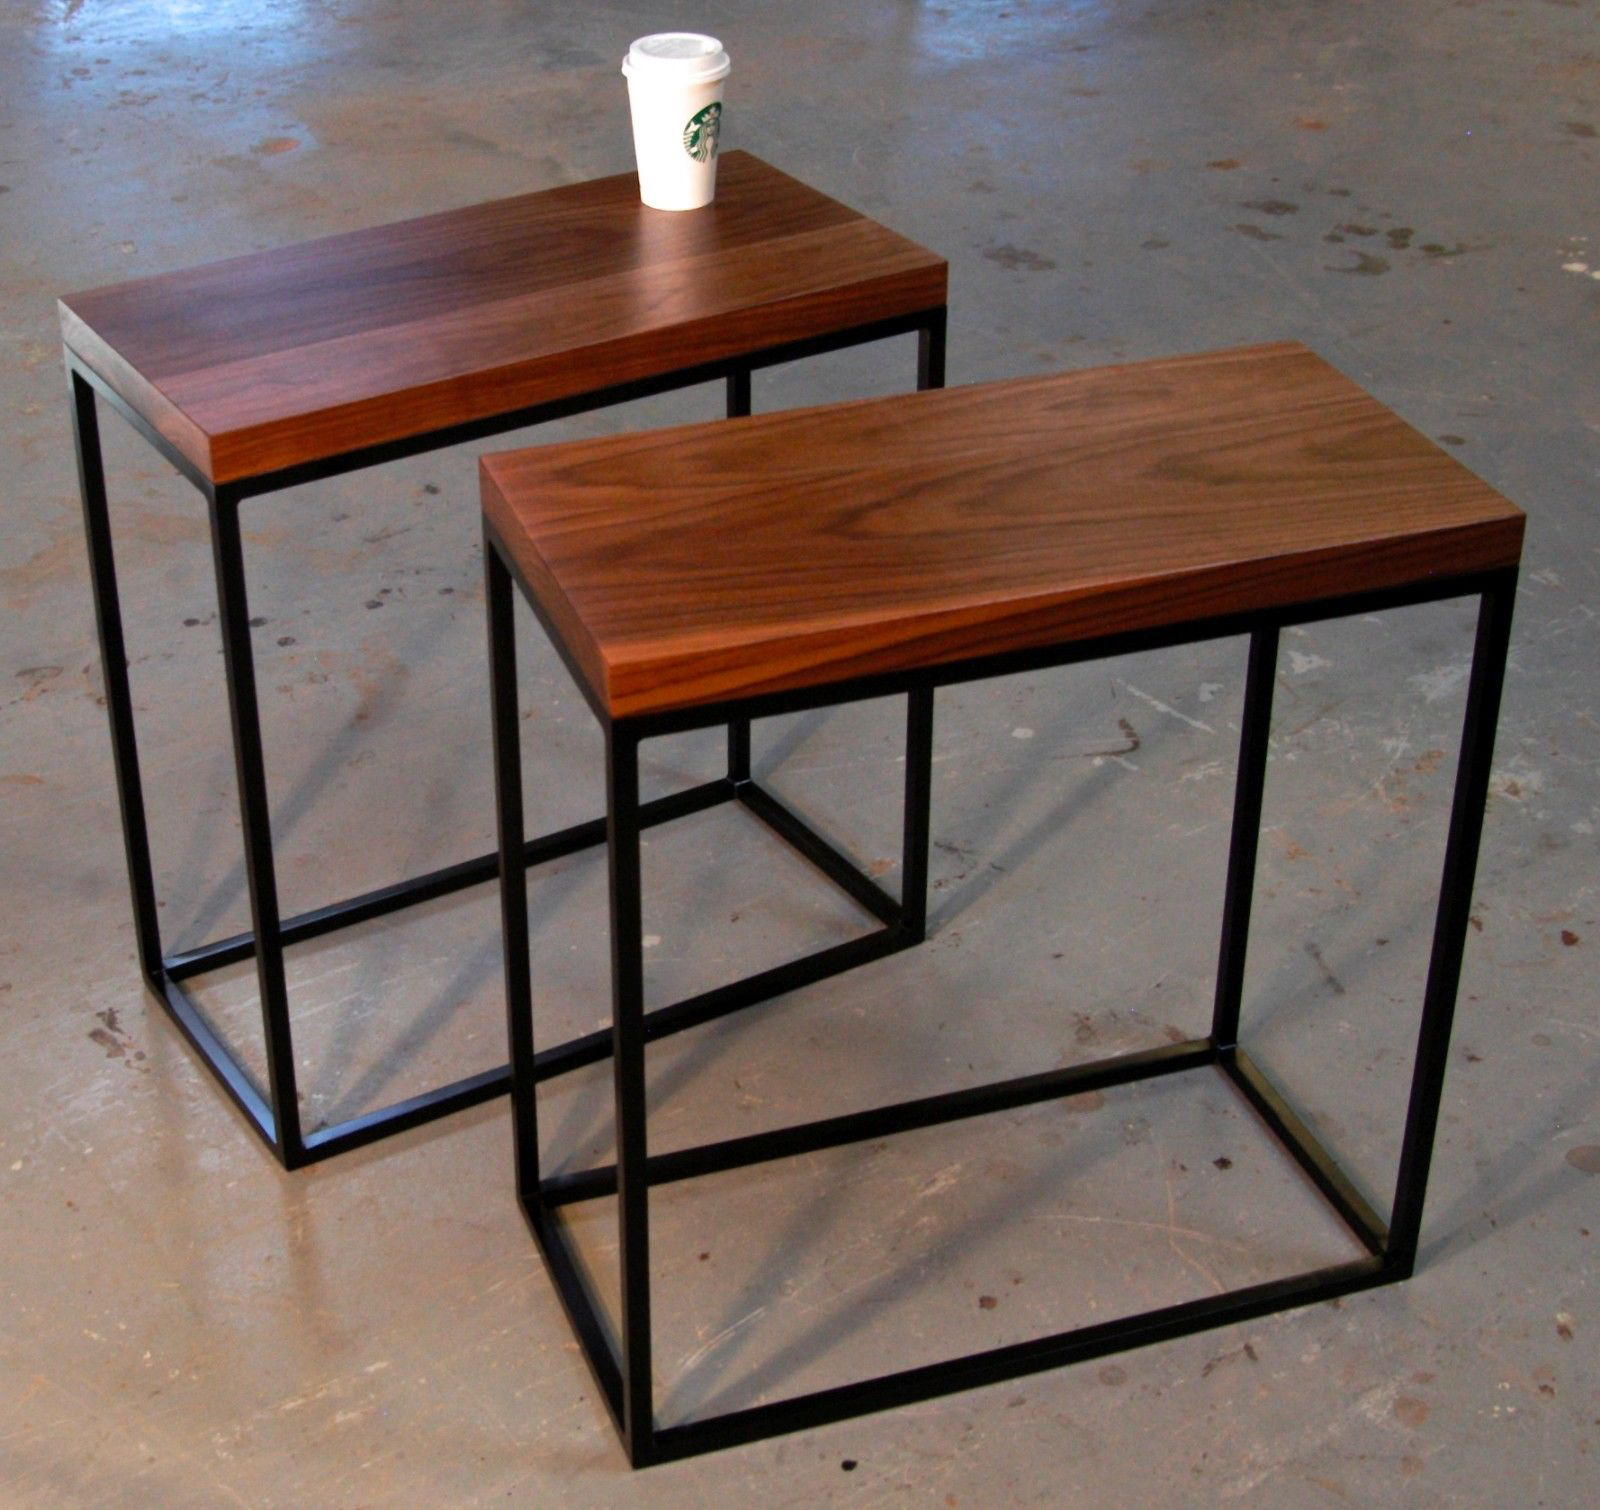 Superb Skinny Walnut And Square Tube Side Tables Bjorling Grant Ibusinesslaw Wood Chair Design Ideas Ibusinesslaworg